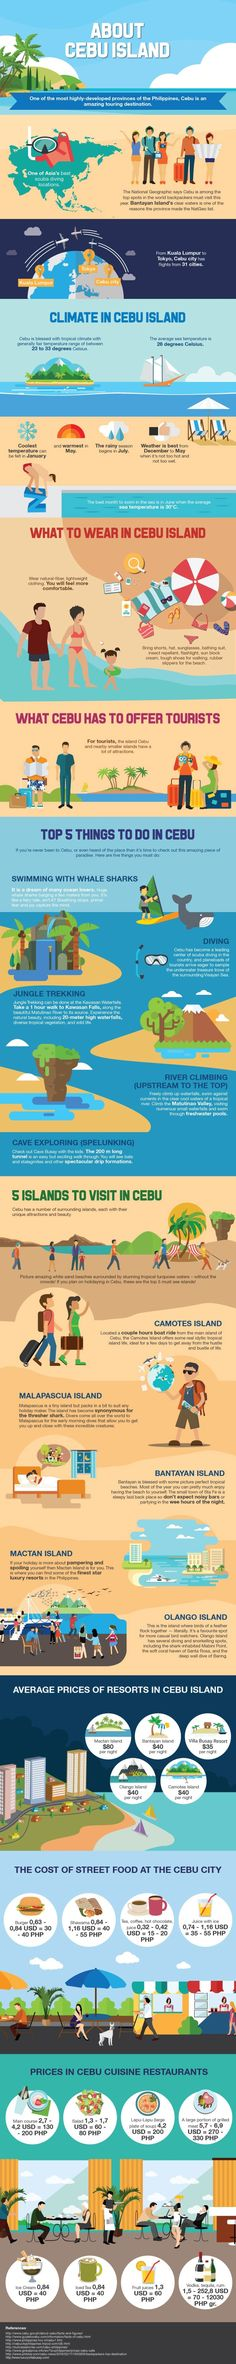 This Infographic shows you in picture form the reasons why Cebu is a great place to visit if you're coming to the Philippines. Cebu Island also took the 19th spot for the BEST Island to visit outside of the USA. These Infographics describe all about Cebu Island like best climate, tourist places and reliable accommodation like private villas in Cebu. If you want to spend your vacation and enjoy a luxurious life in your private luxury villas like a heaven so come in Cebu Island.